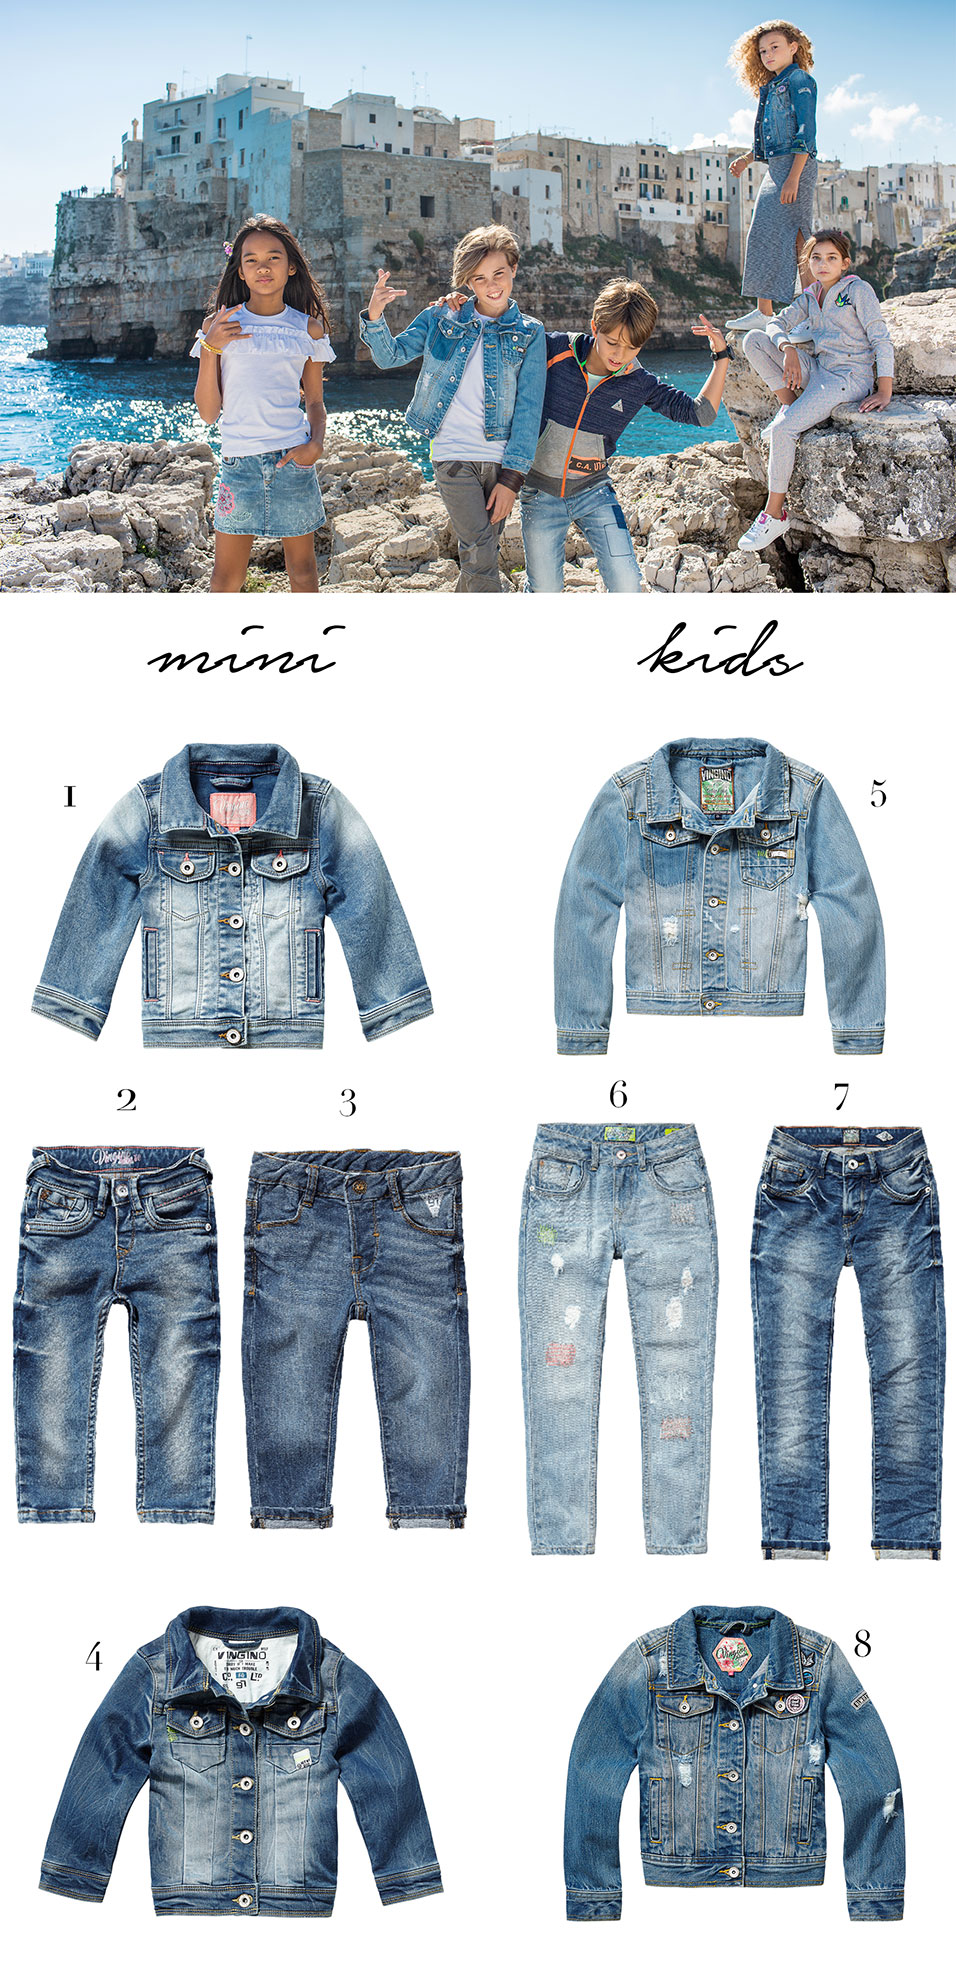 vingino-jeans-special-the-mom-